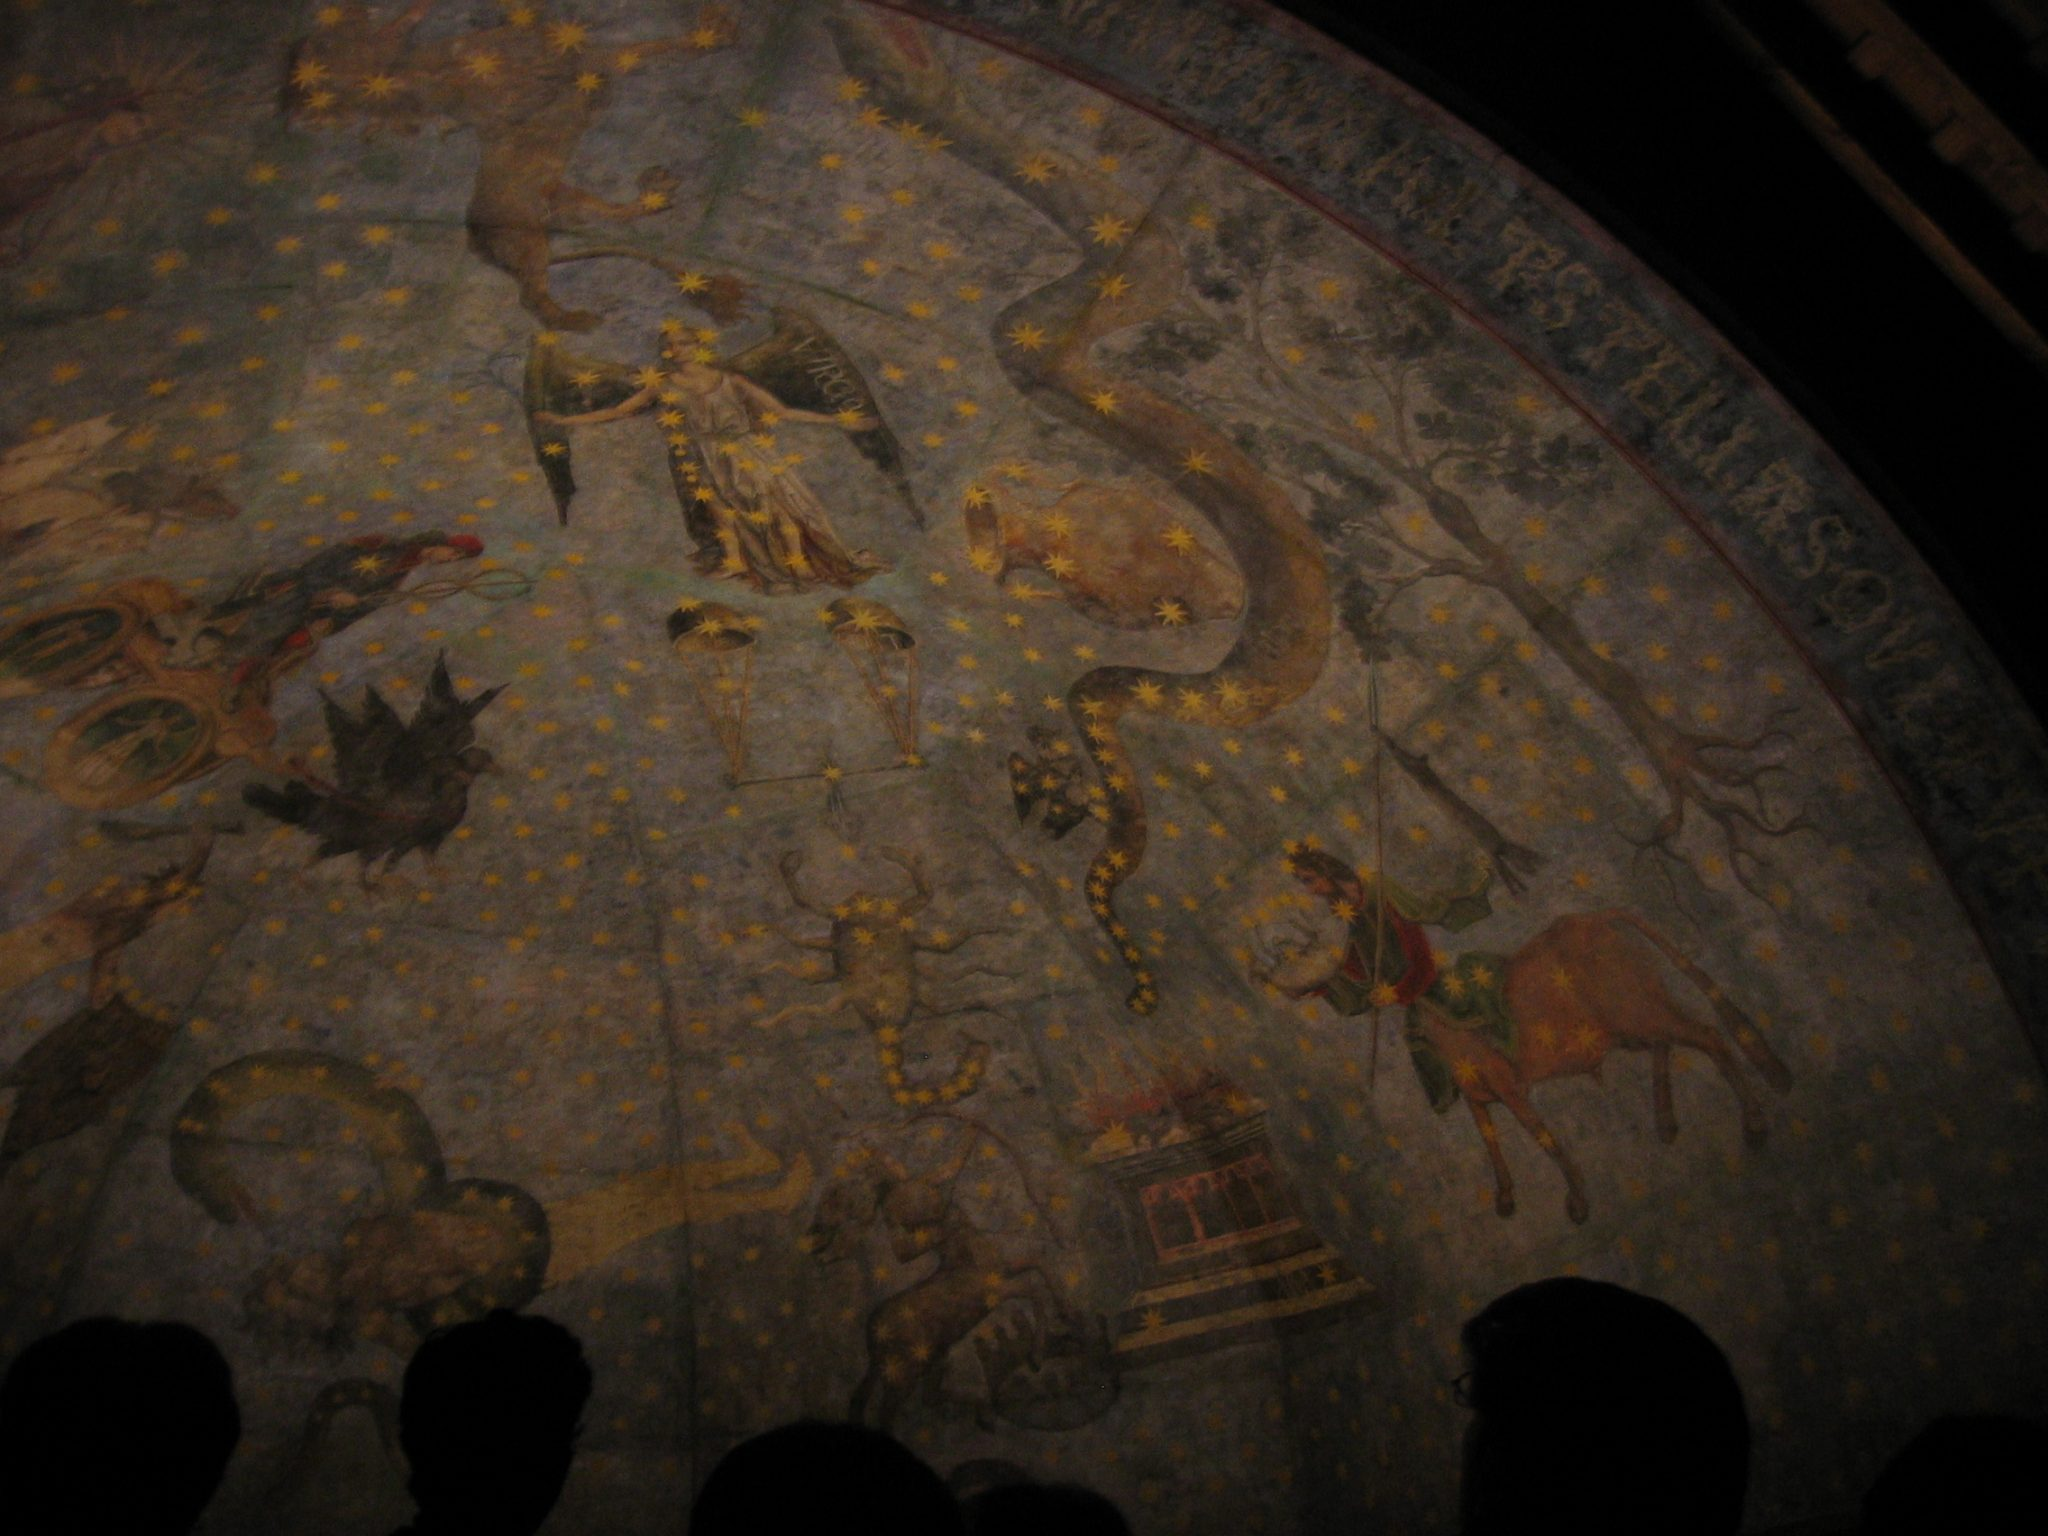 The sky at night, Sala Calderón de la Barca - ceiling painting by Fernando Gallego (ca. 1480) including the signs of the Zodiac, a number of constellations and the four winds By Pat Reynolds CC BY-NC 2.0